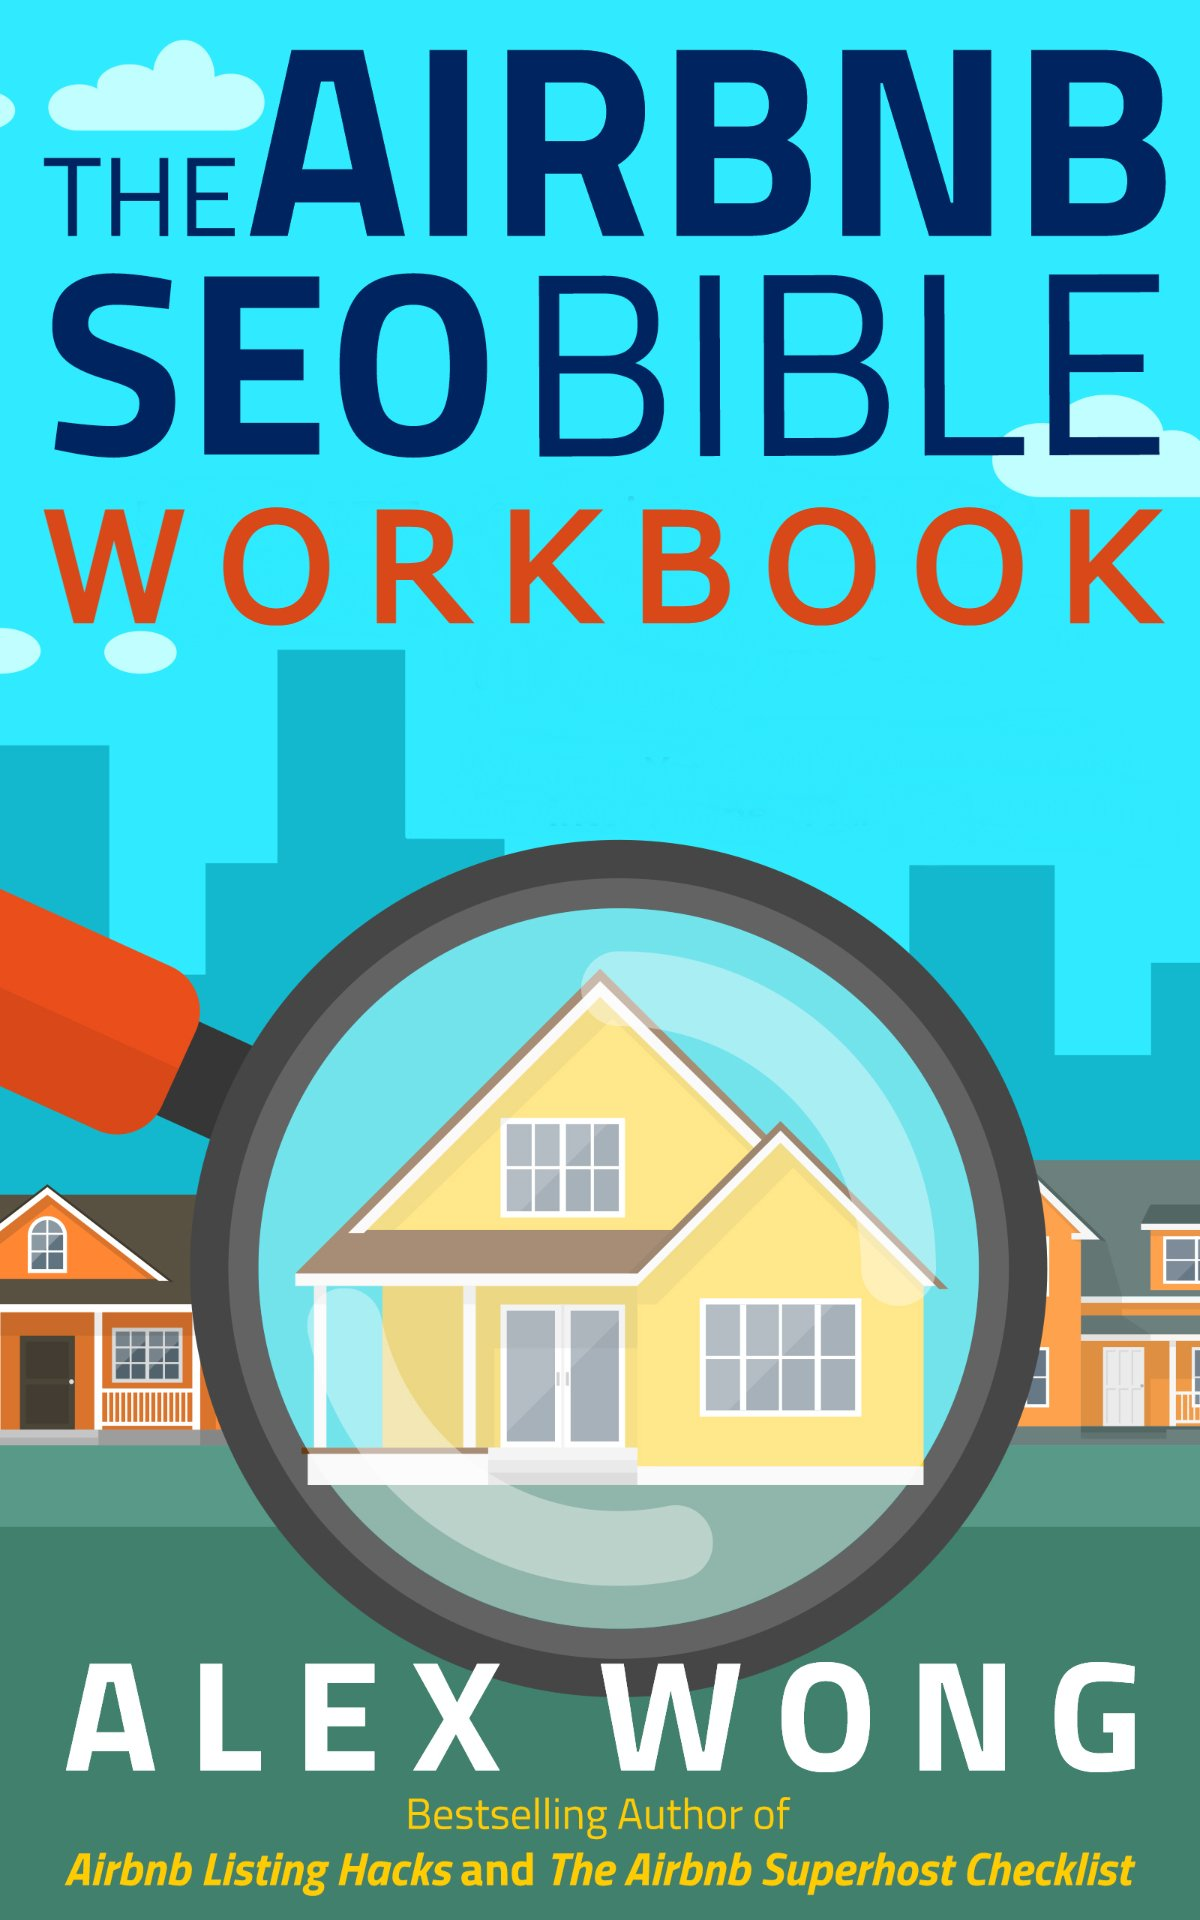 Airbnb SEO Bible Workbook